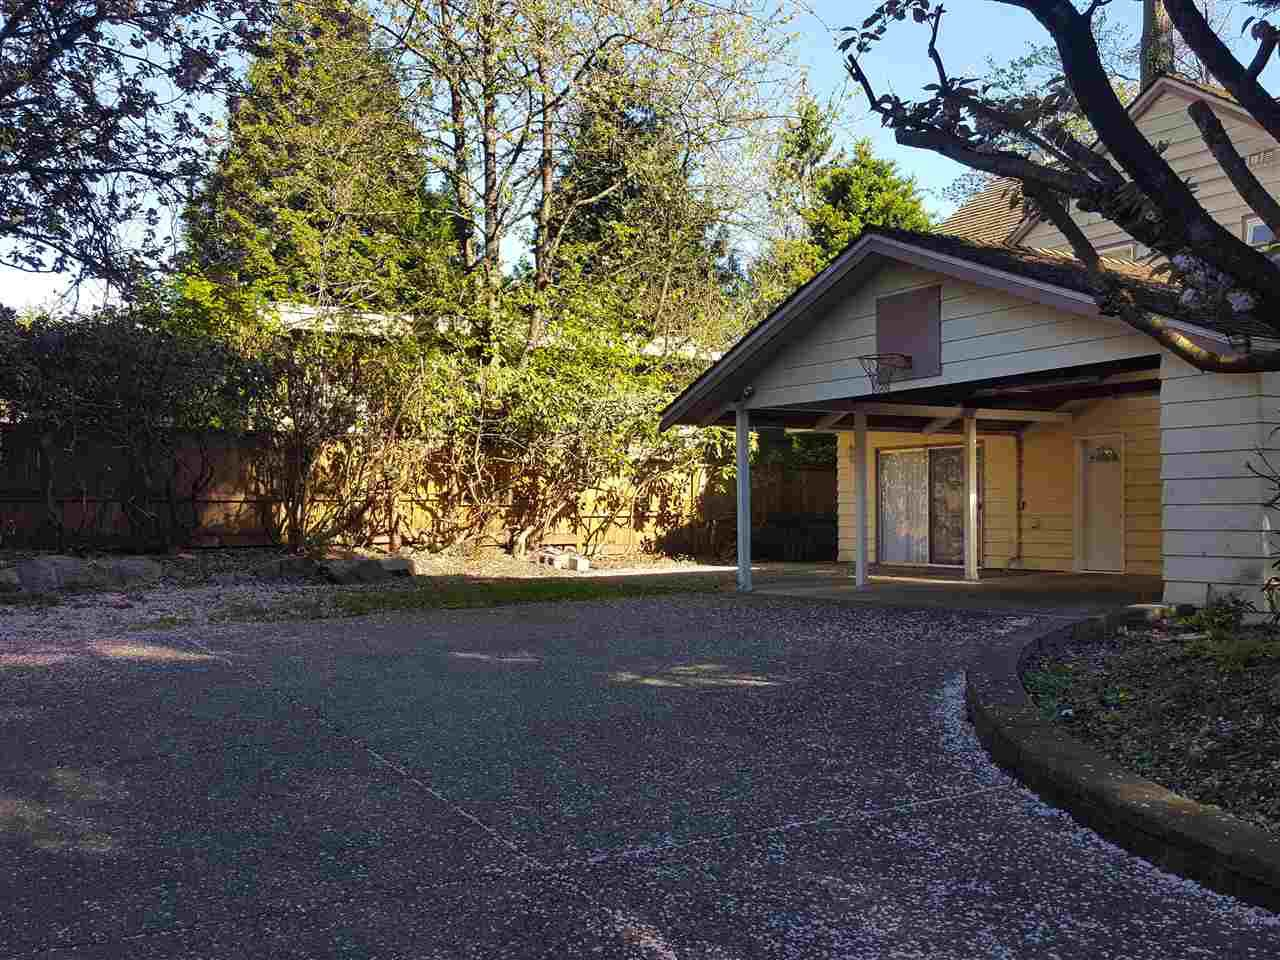 Photo 3: Photos: 2587 W 49TH Avenue in Vancouver: Kerrisdale House for sale (Vancouver West)  : MLS®# R2178301